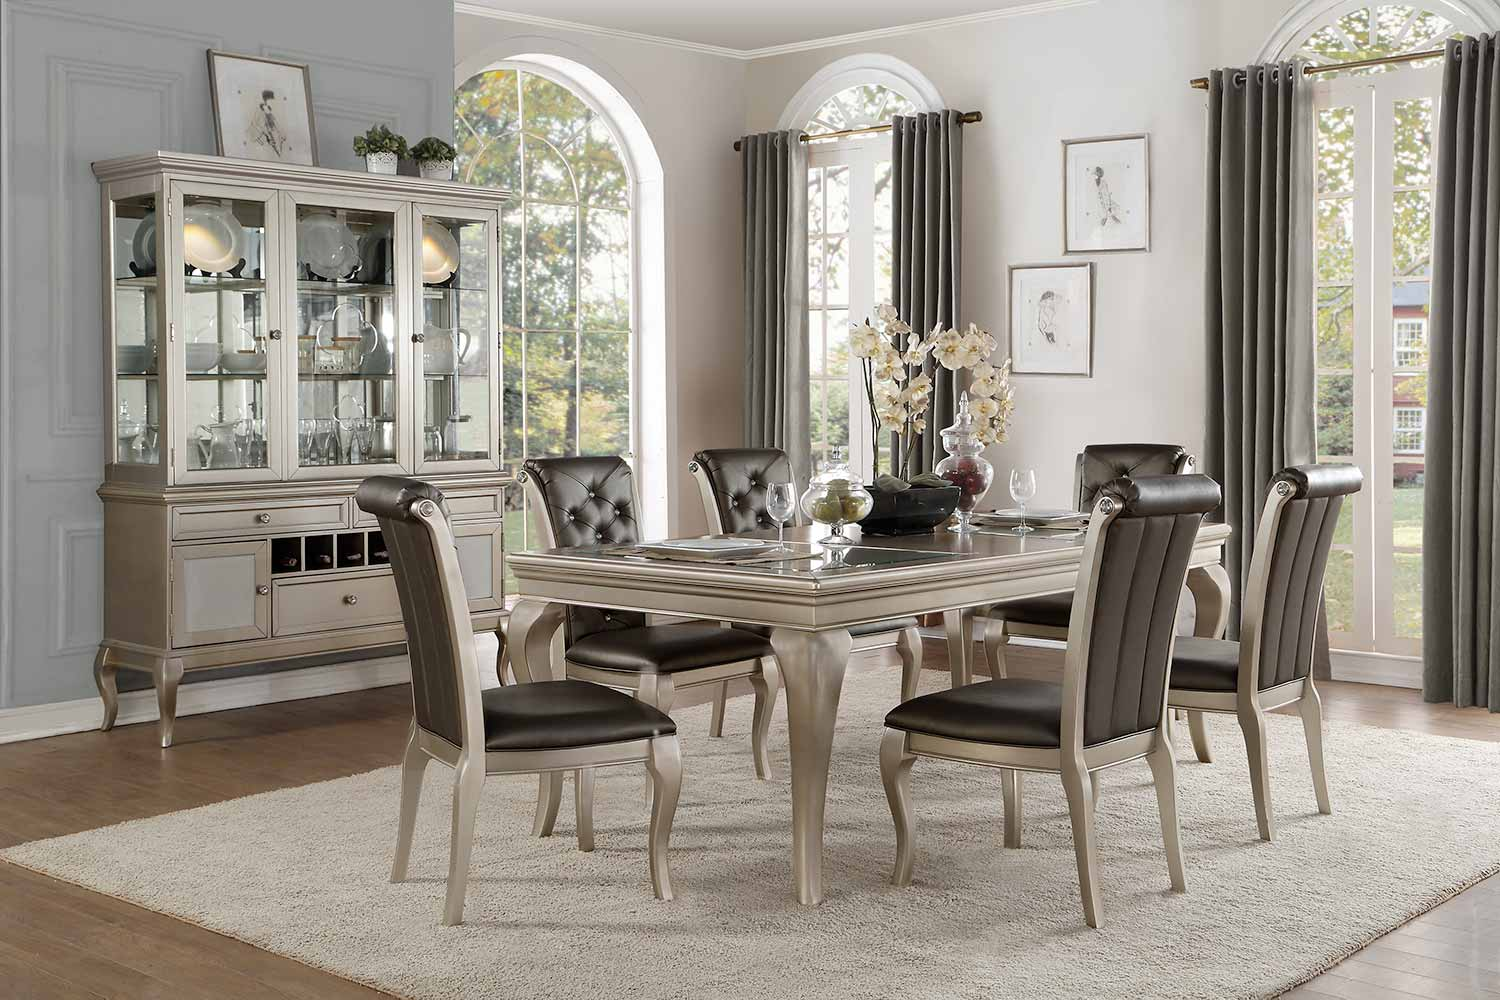 Homelegance Crawford Dining Set - Silver